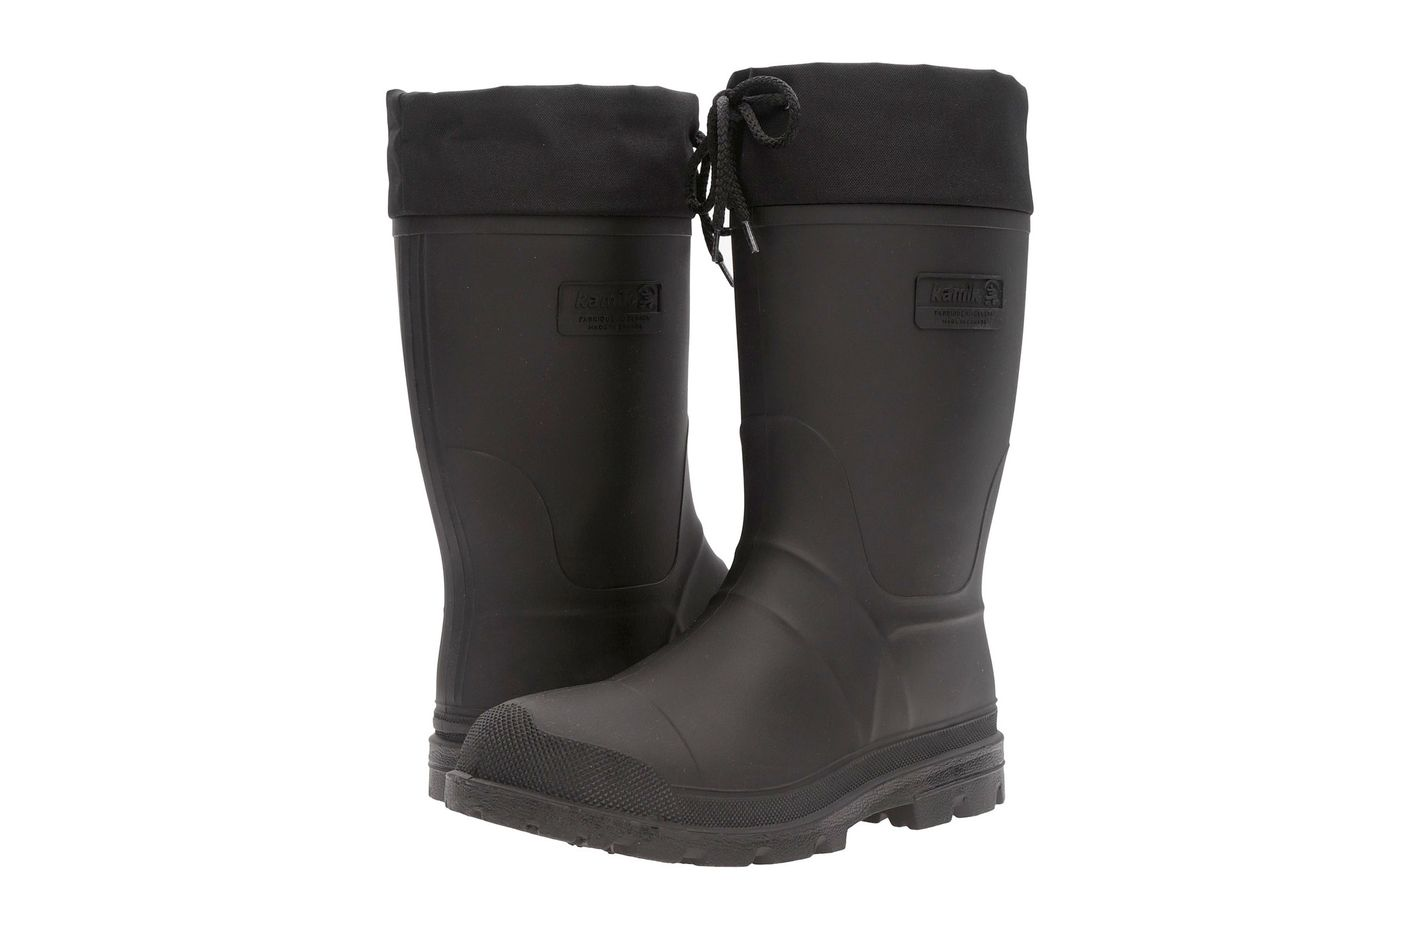 5 Pairs of Rain Boots for Wide Calves